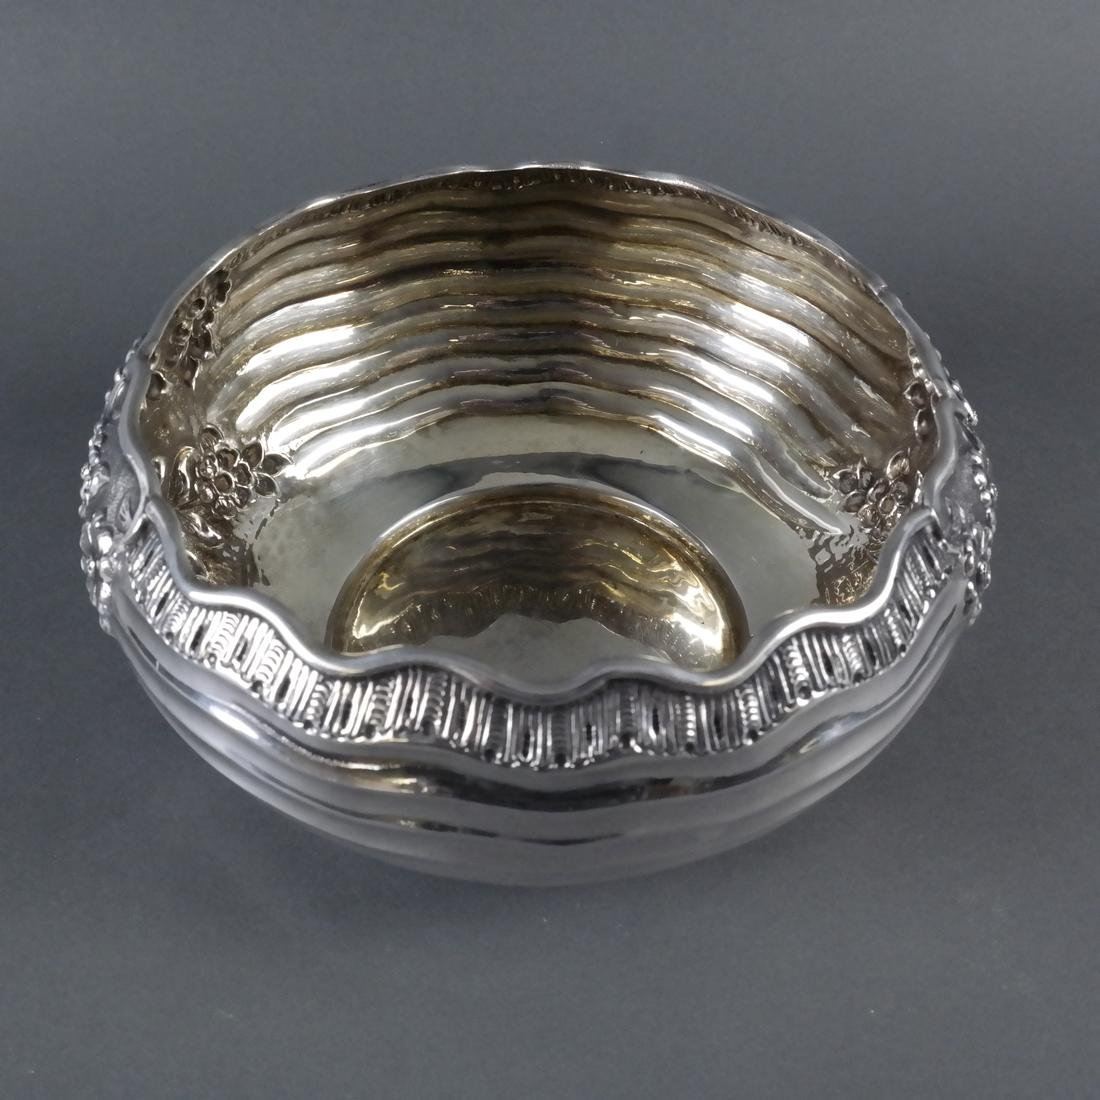 .900 Standard Silver Chased Foliate Bowl - 4